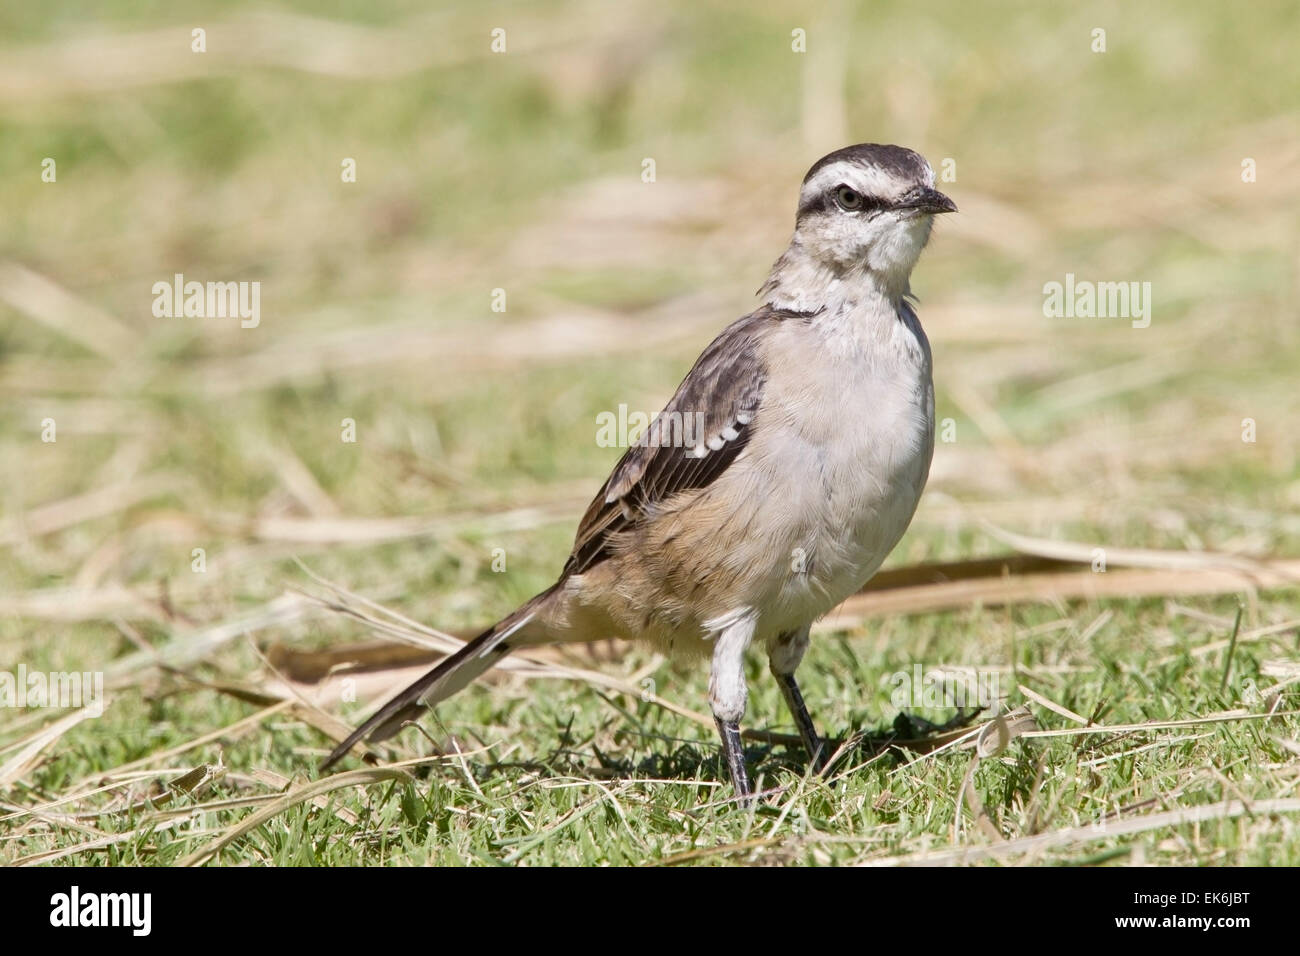 Chalk-browed Mockingbird (Mimus saturninus) adult standing on short vegetation, Costanera Sur park, Buenos Aires - Stock Image